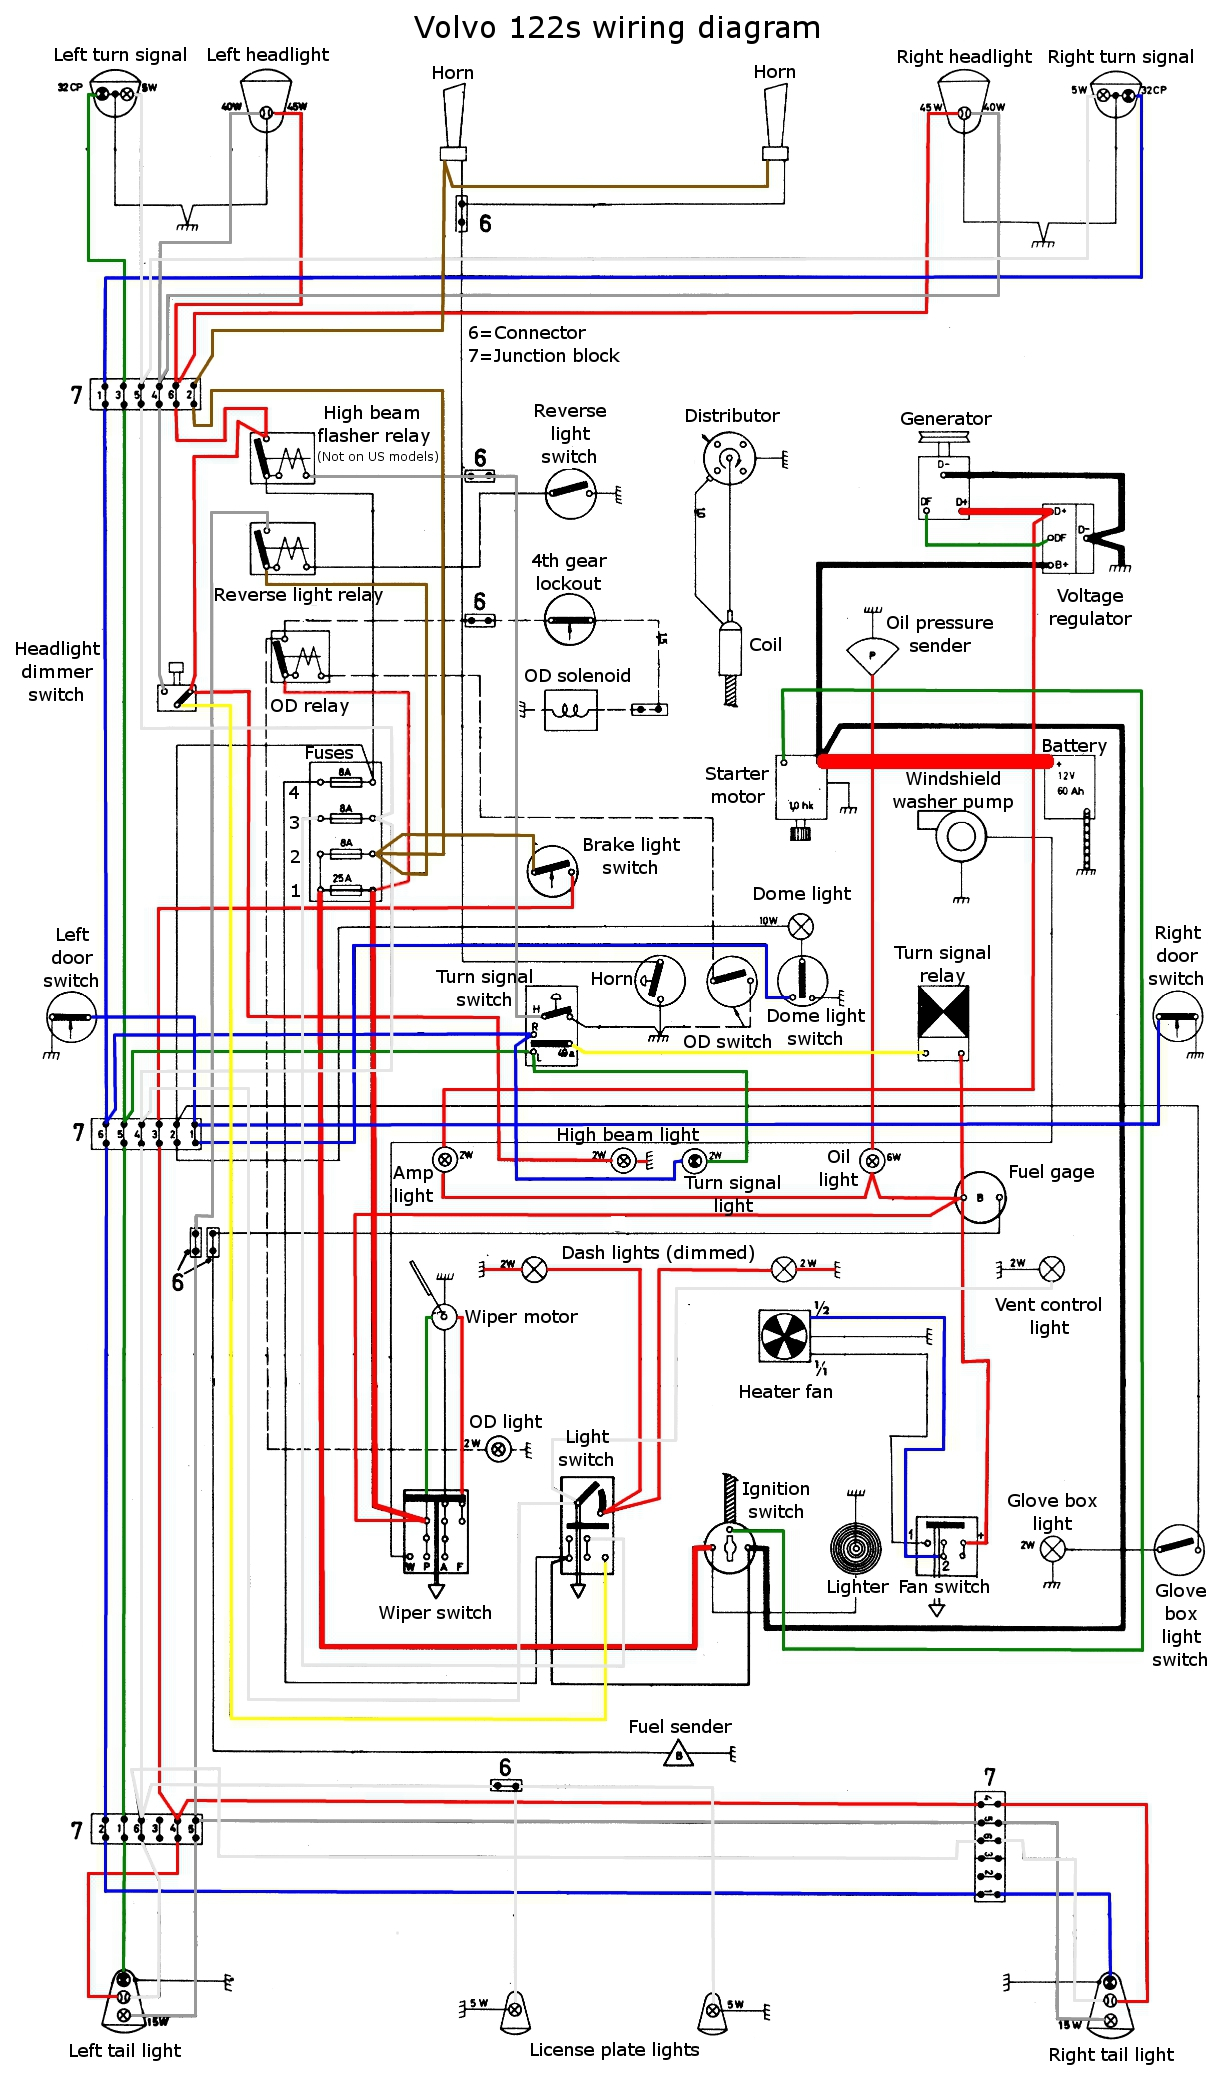 122 wiring diagram color wiring gremlins true t 49 wiring diagram at crackthecode.co